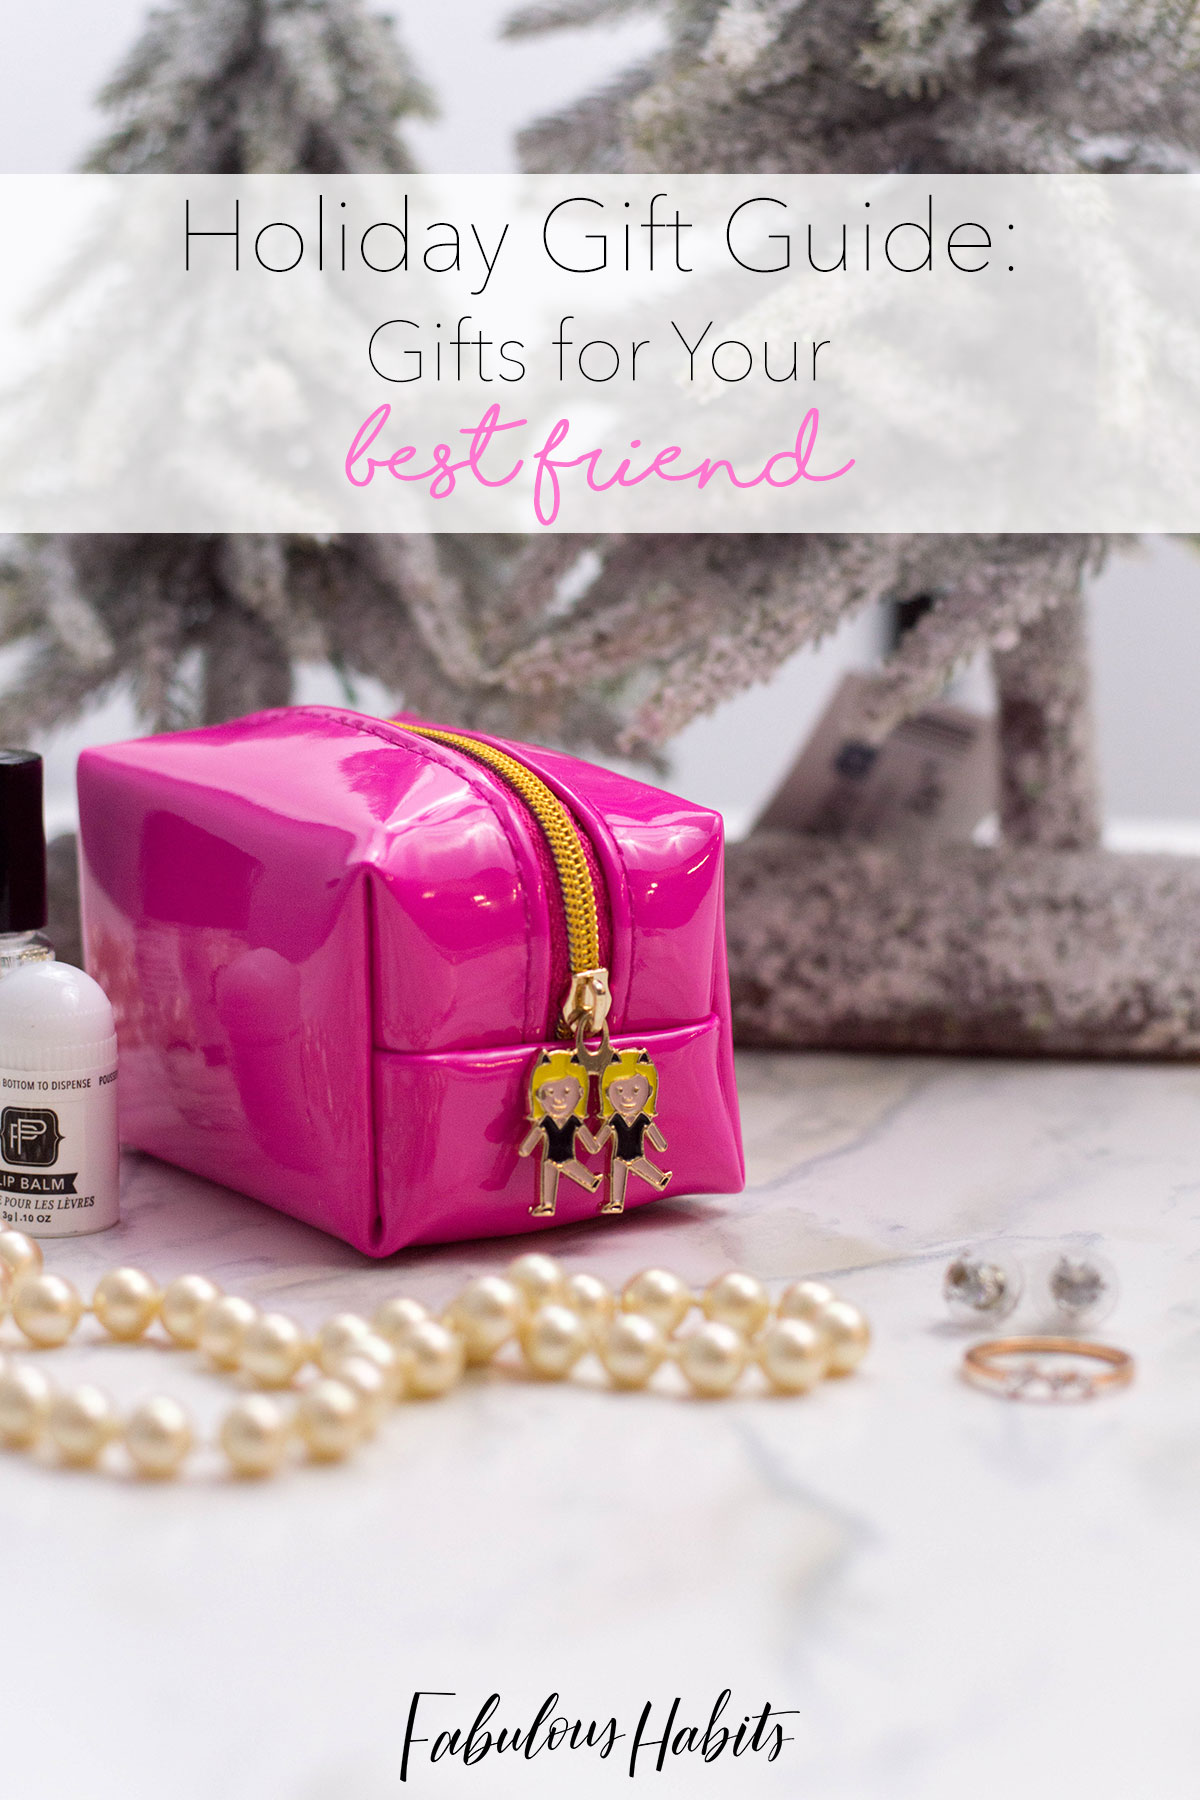 The ultimate Bestie Gift Guide: 7 gift ideas for your best friend!